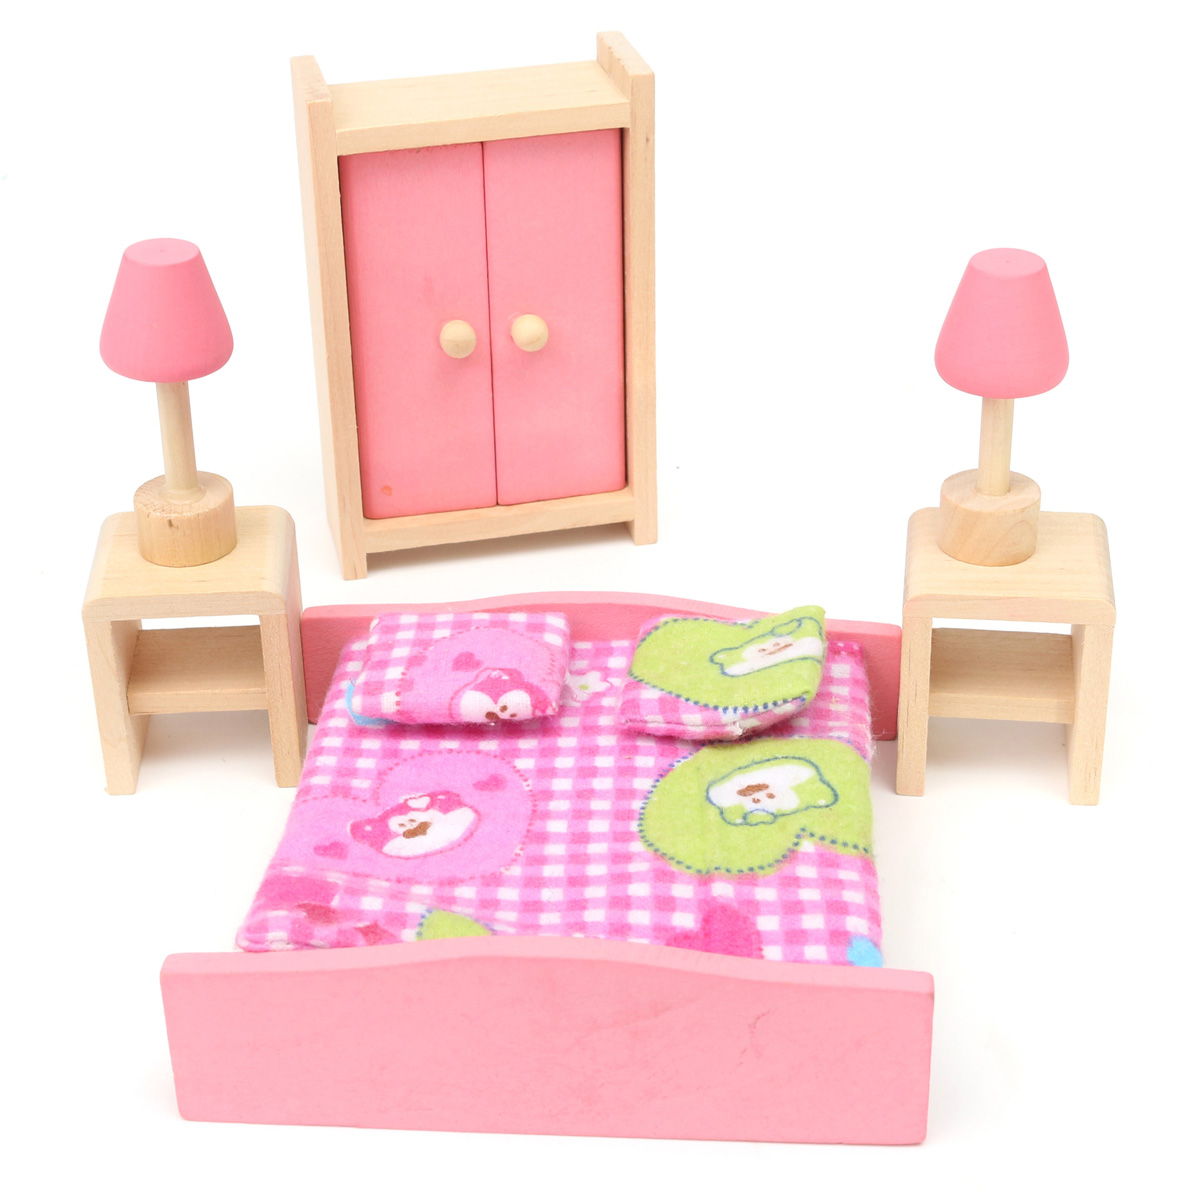 Wooden furniture room set dolls house family miniature for kids children toy ebay Dolls wooden furniture